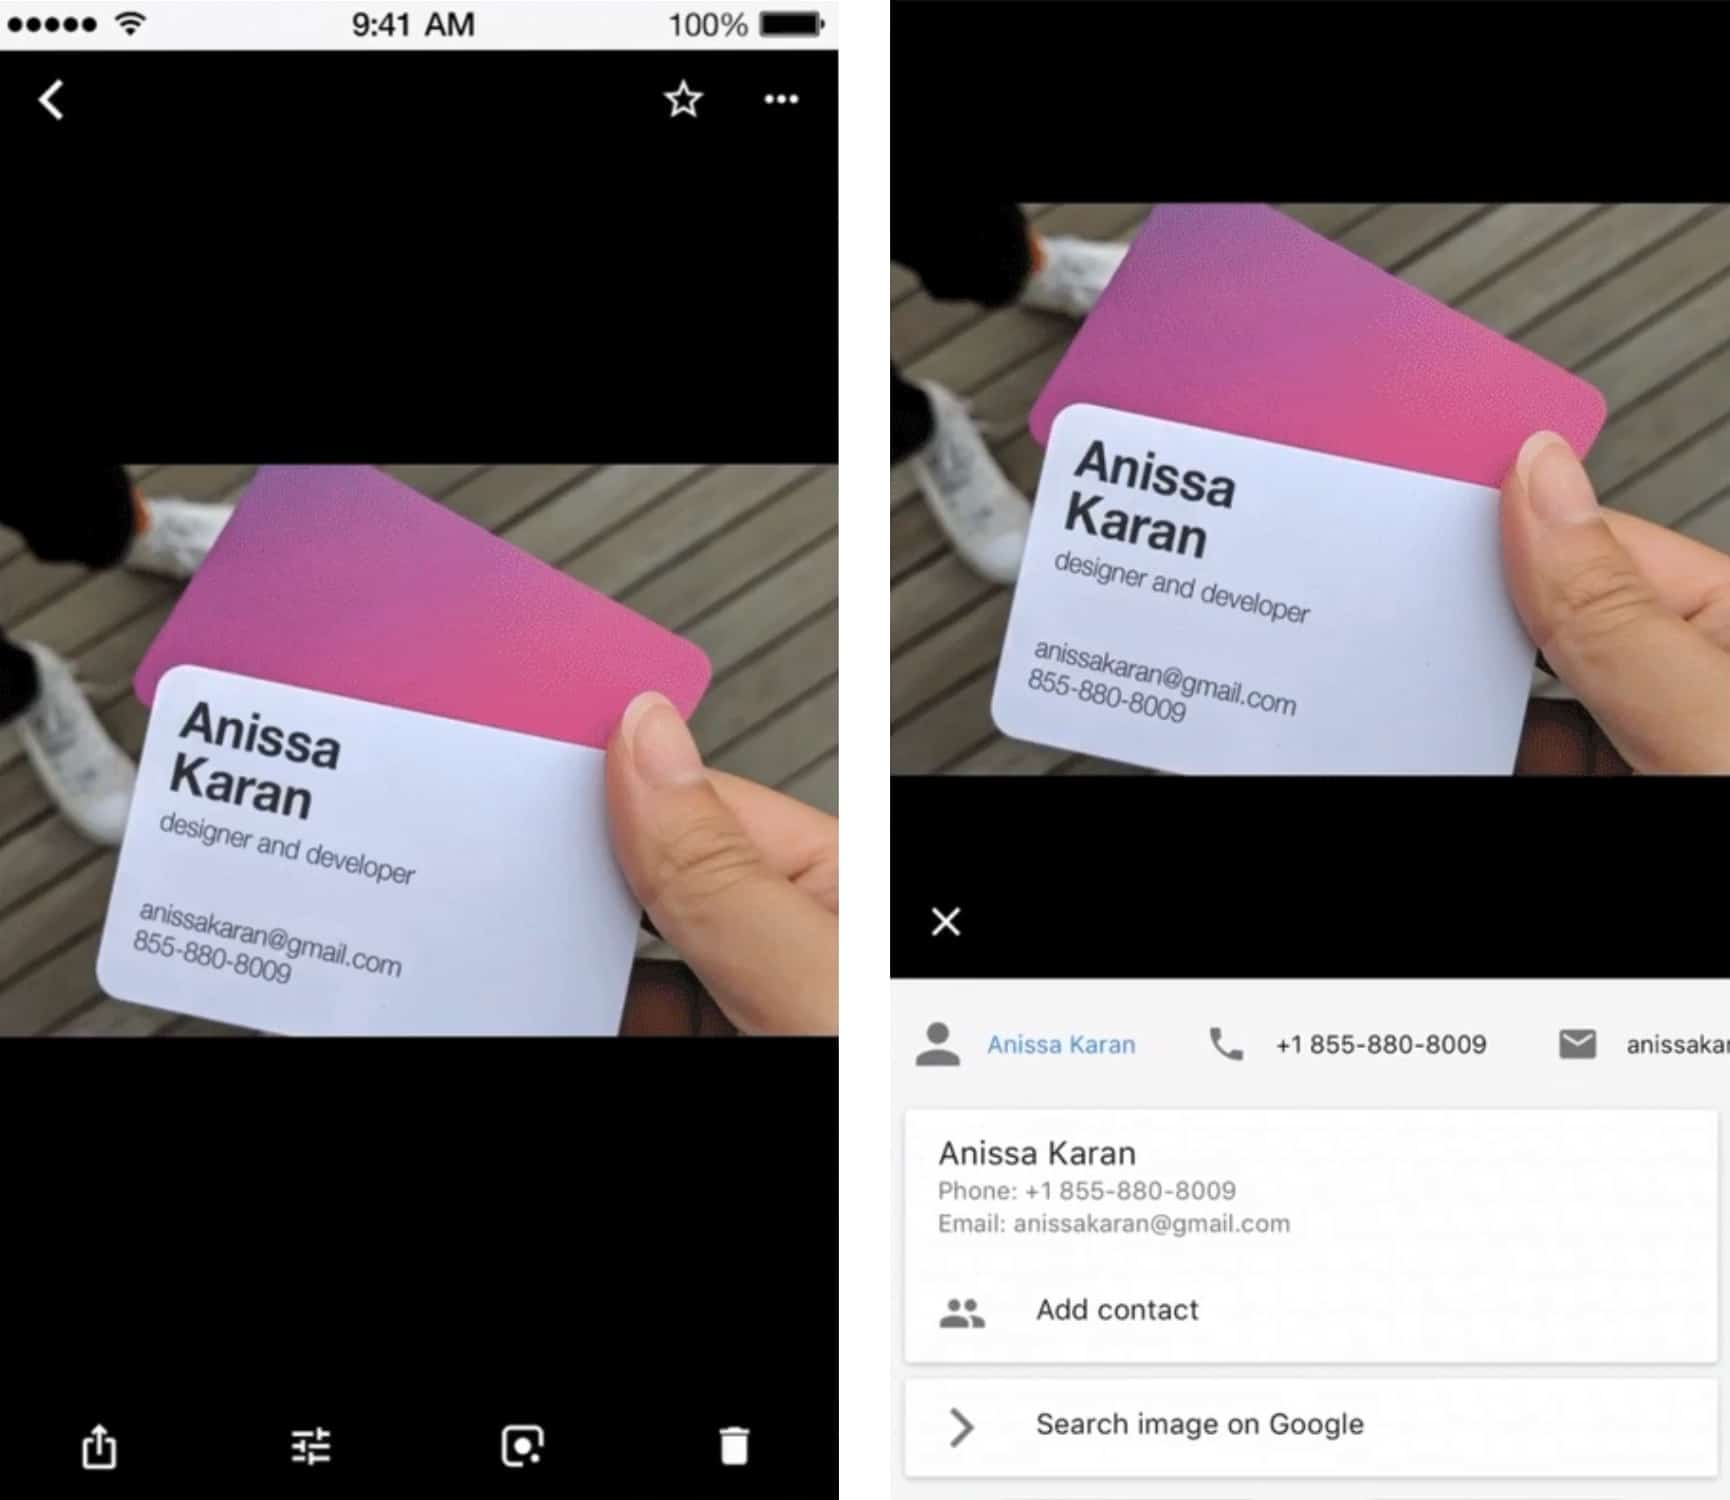 Google Lens in action